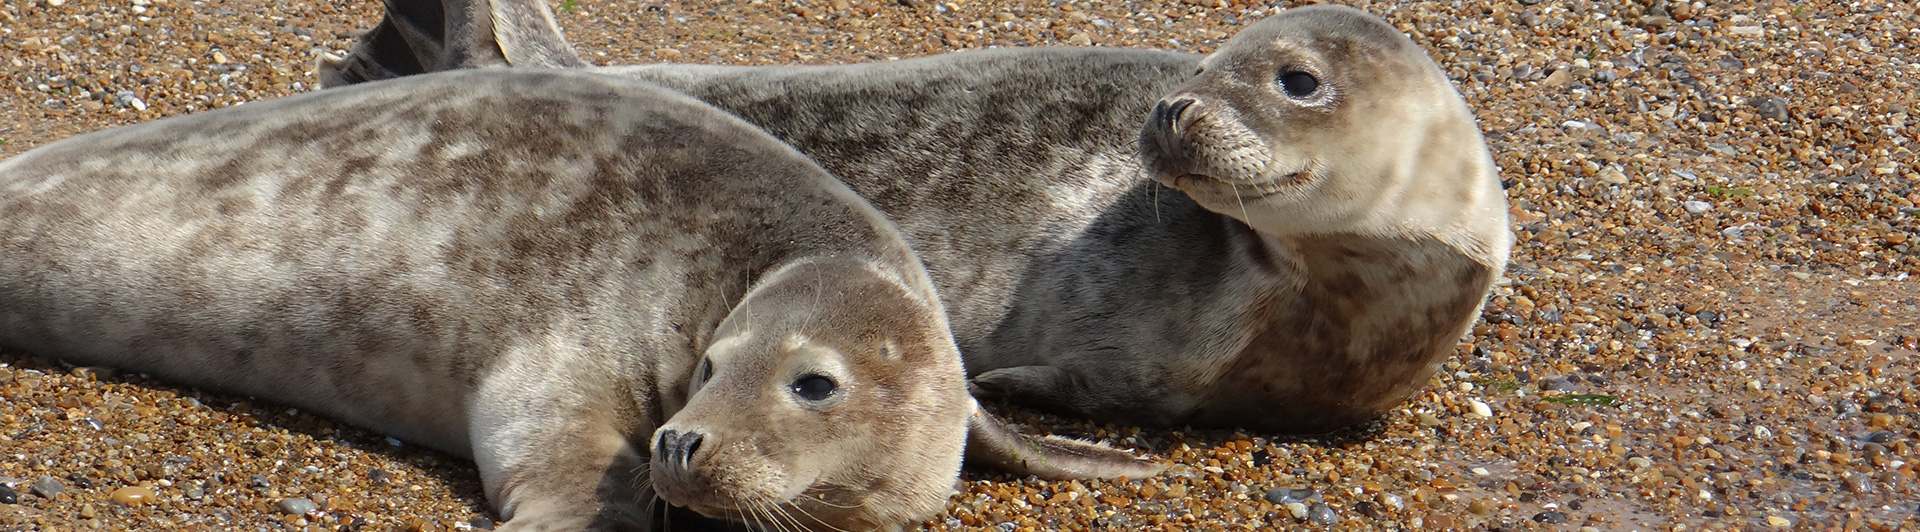 Pair of young seal pups hauled out on the beach